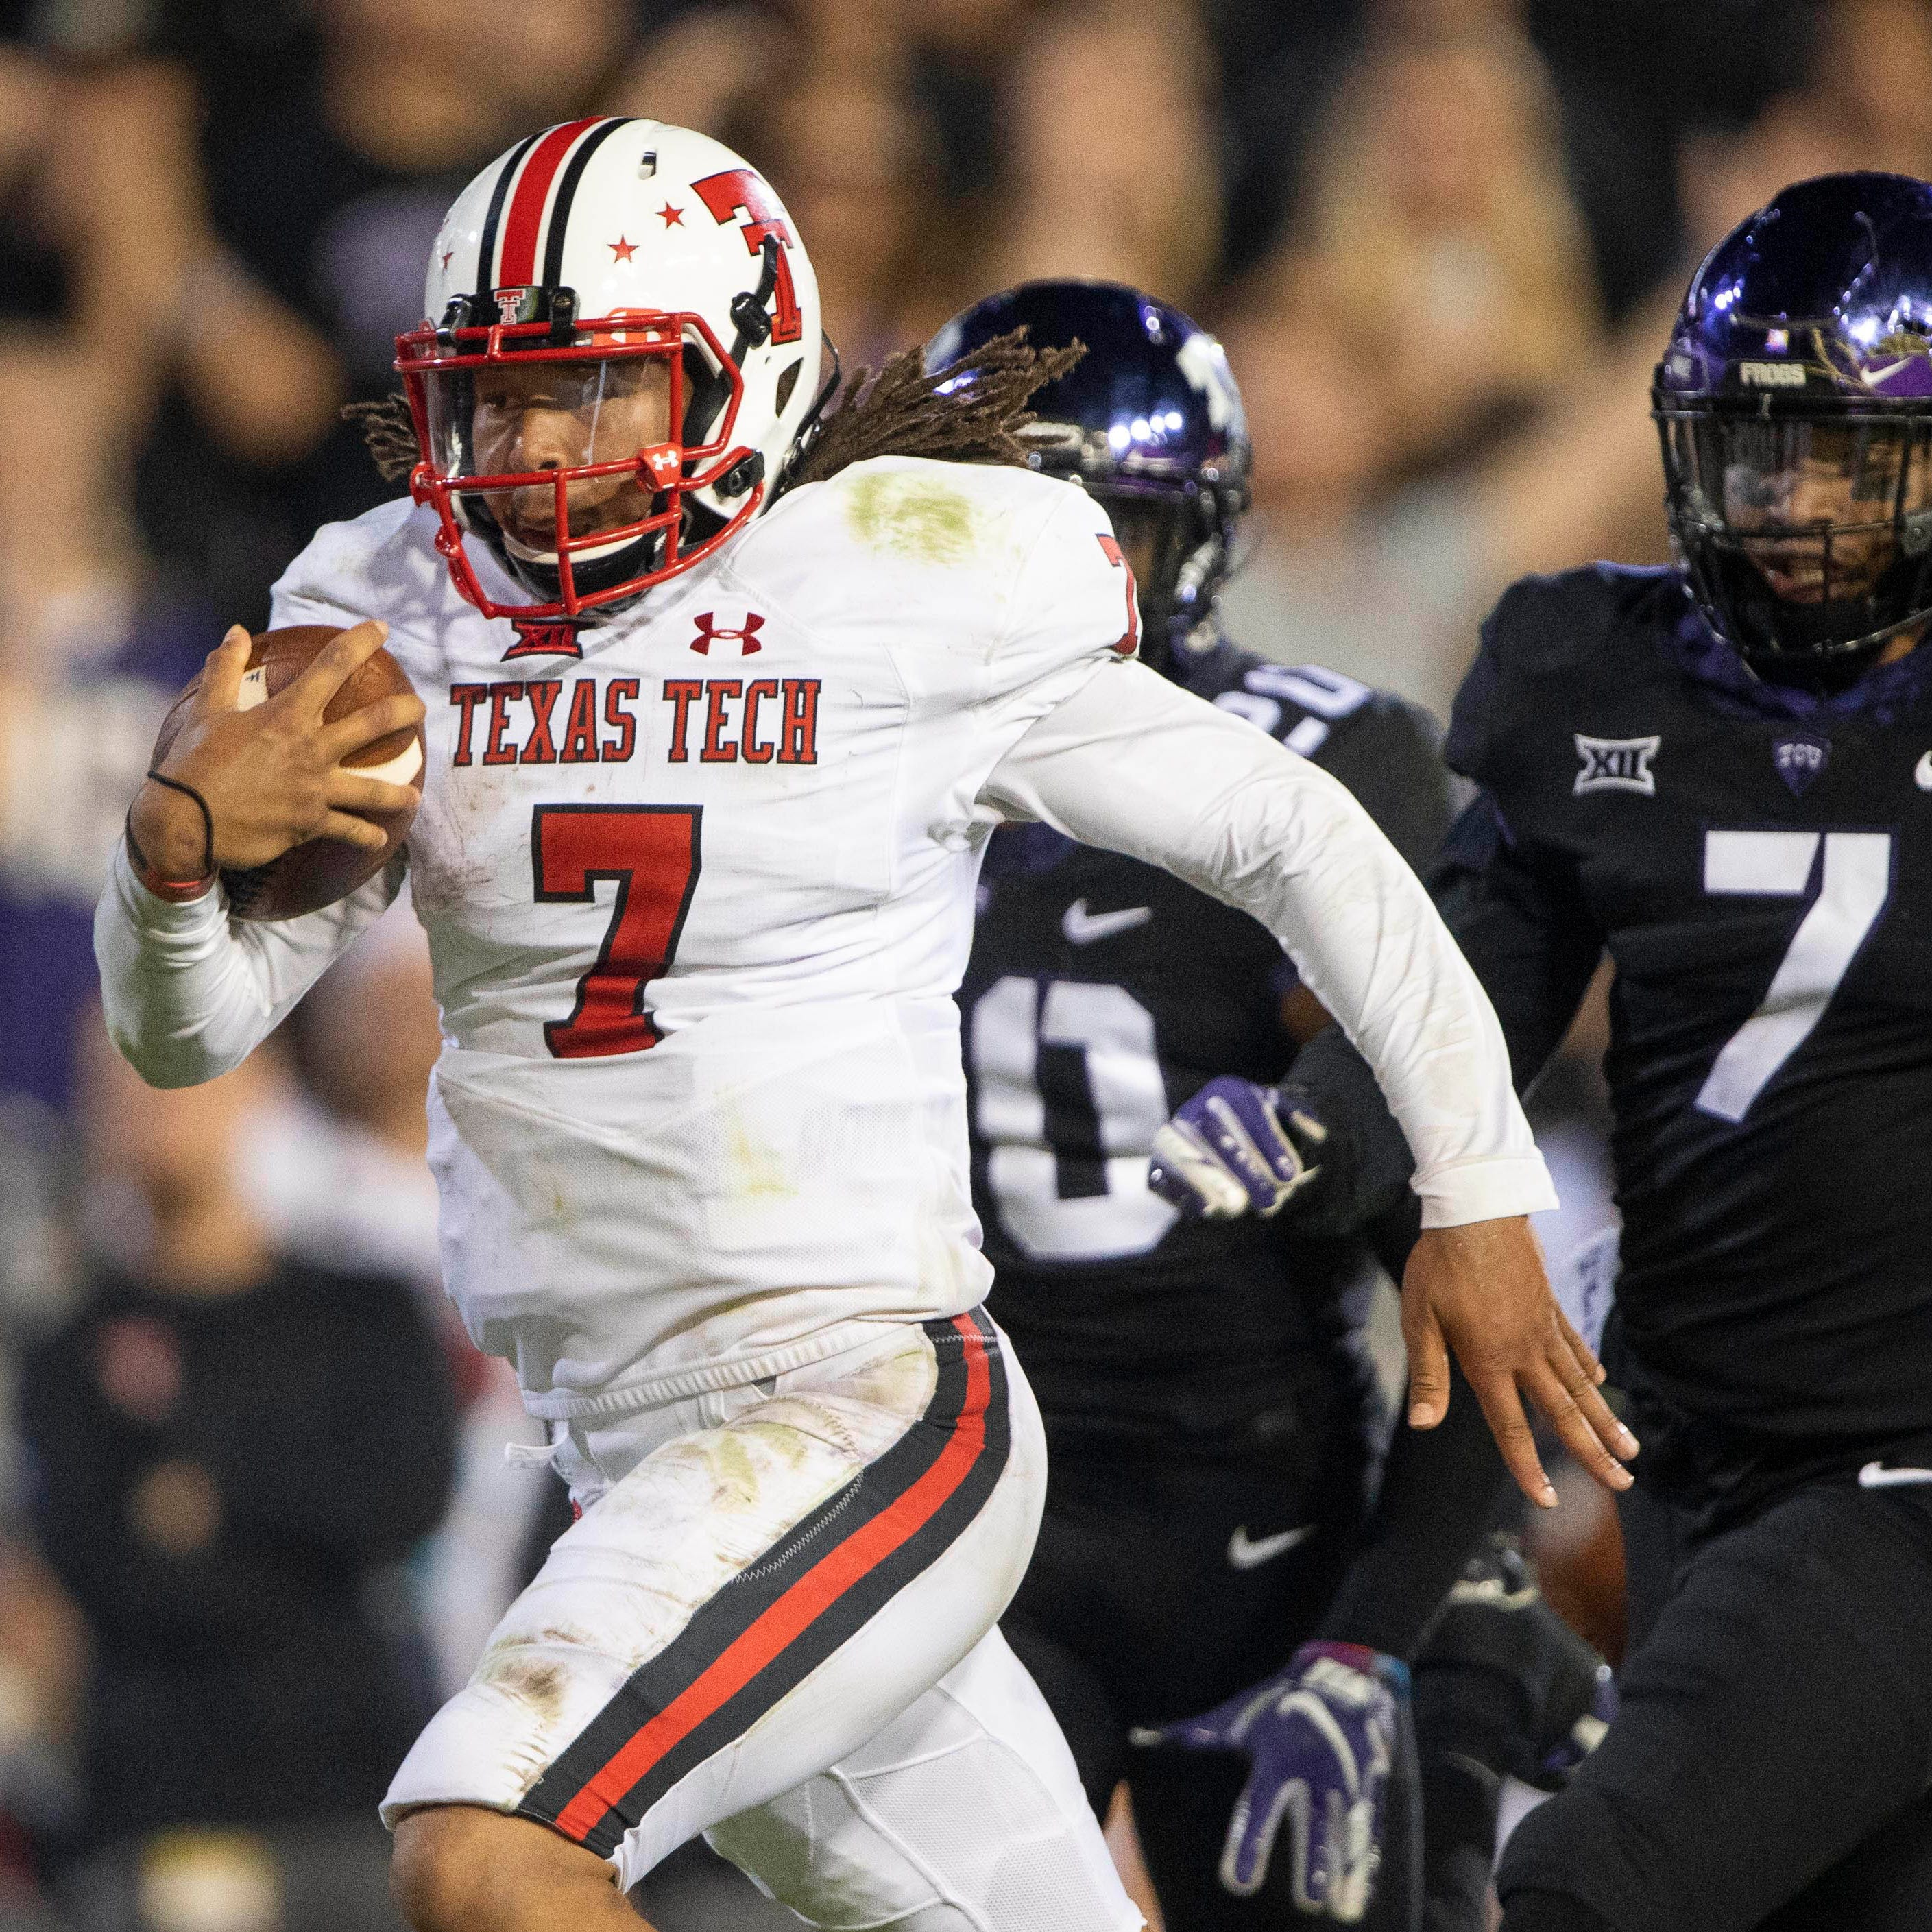 Texas Tech quarterback Jett Duffey scores the game-winning touchdown against TCU.